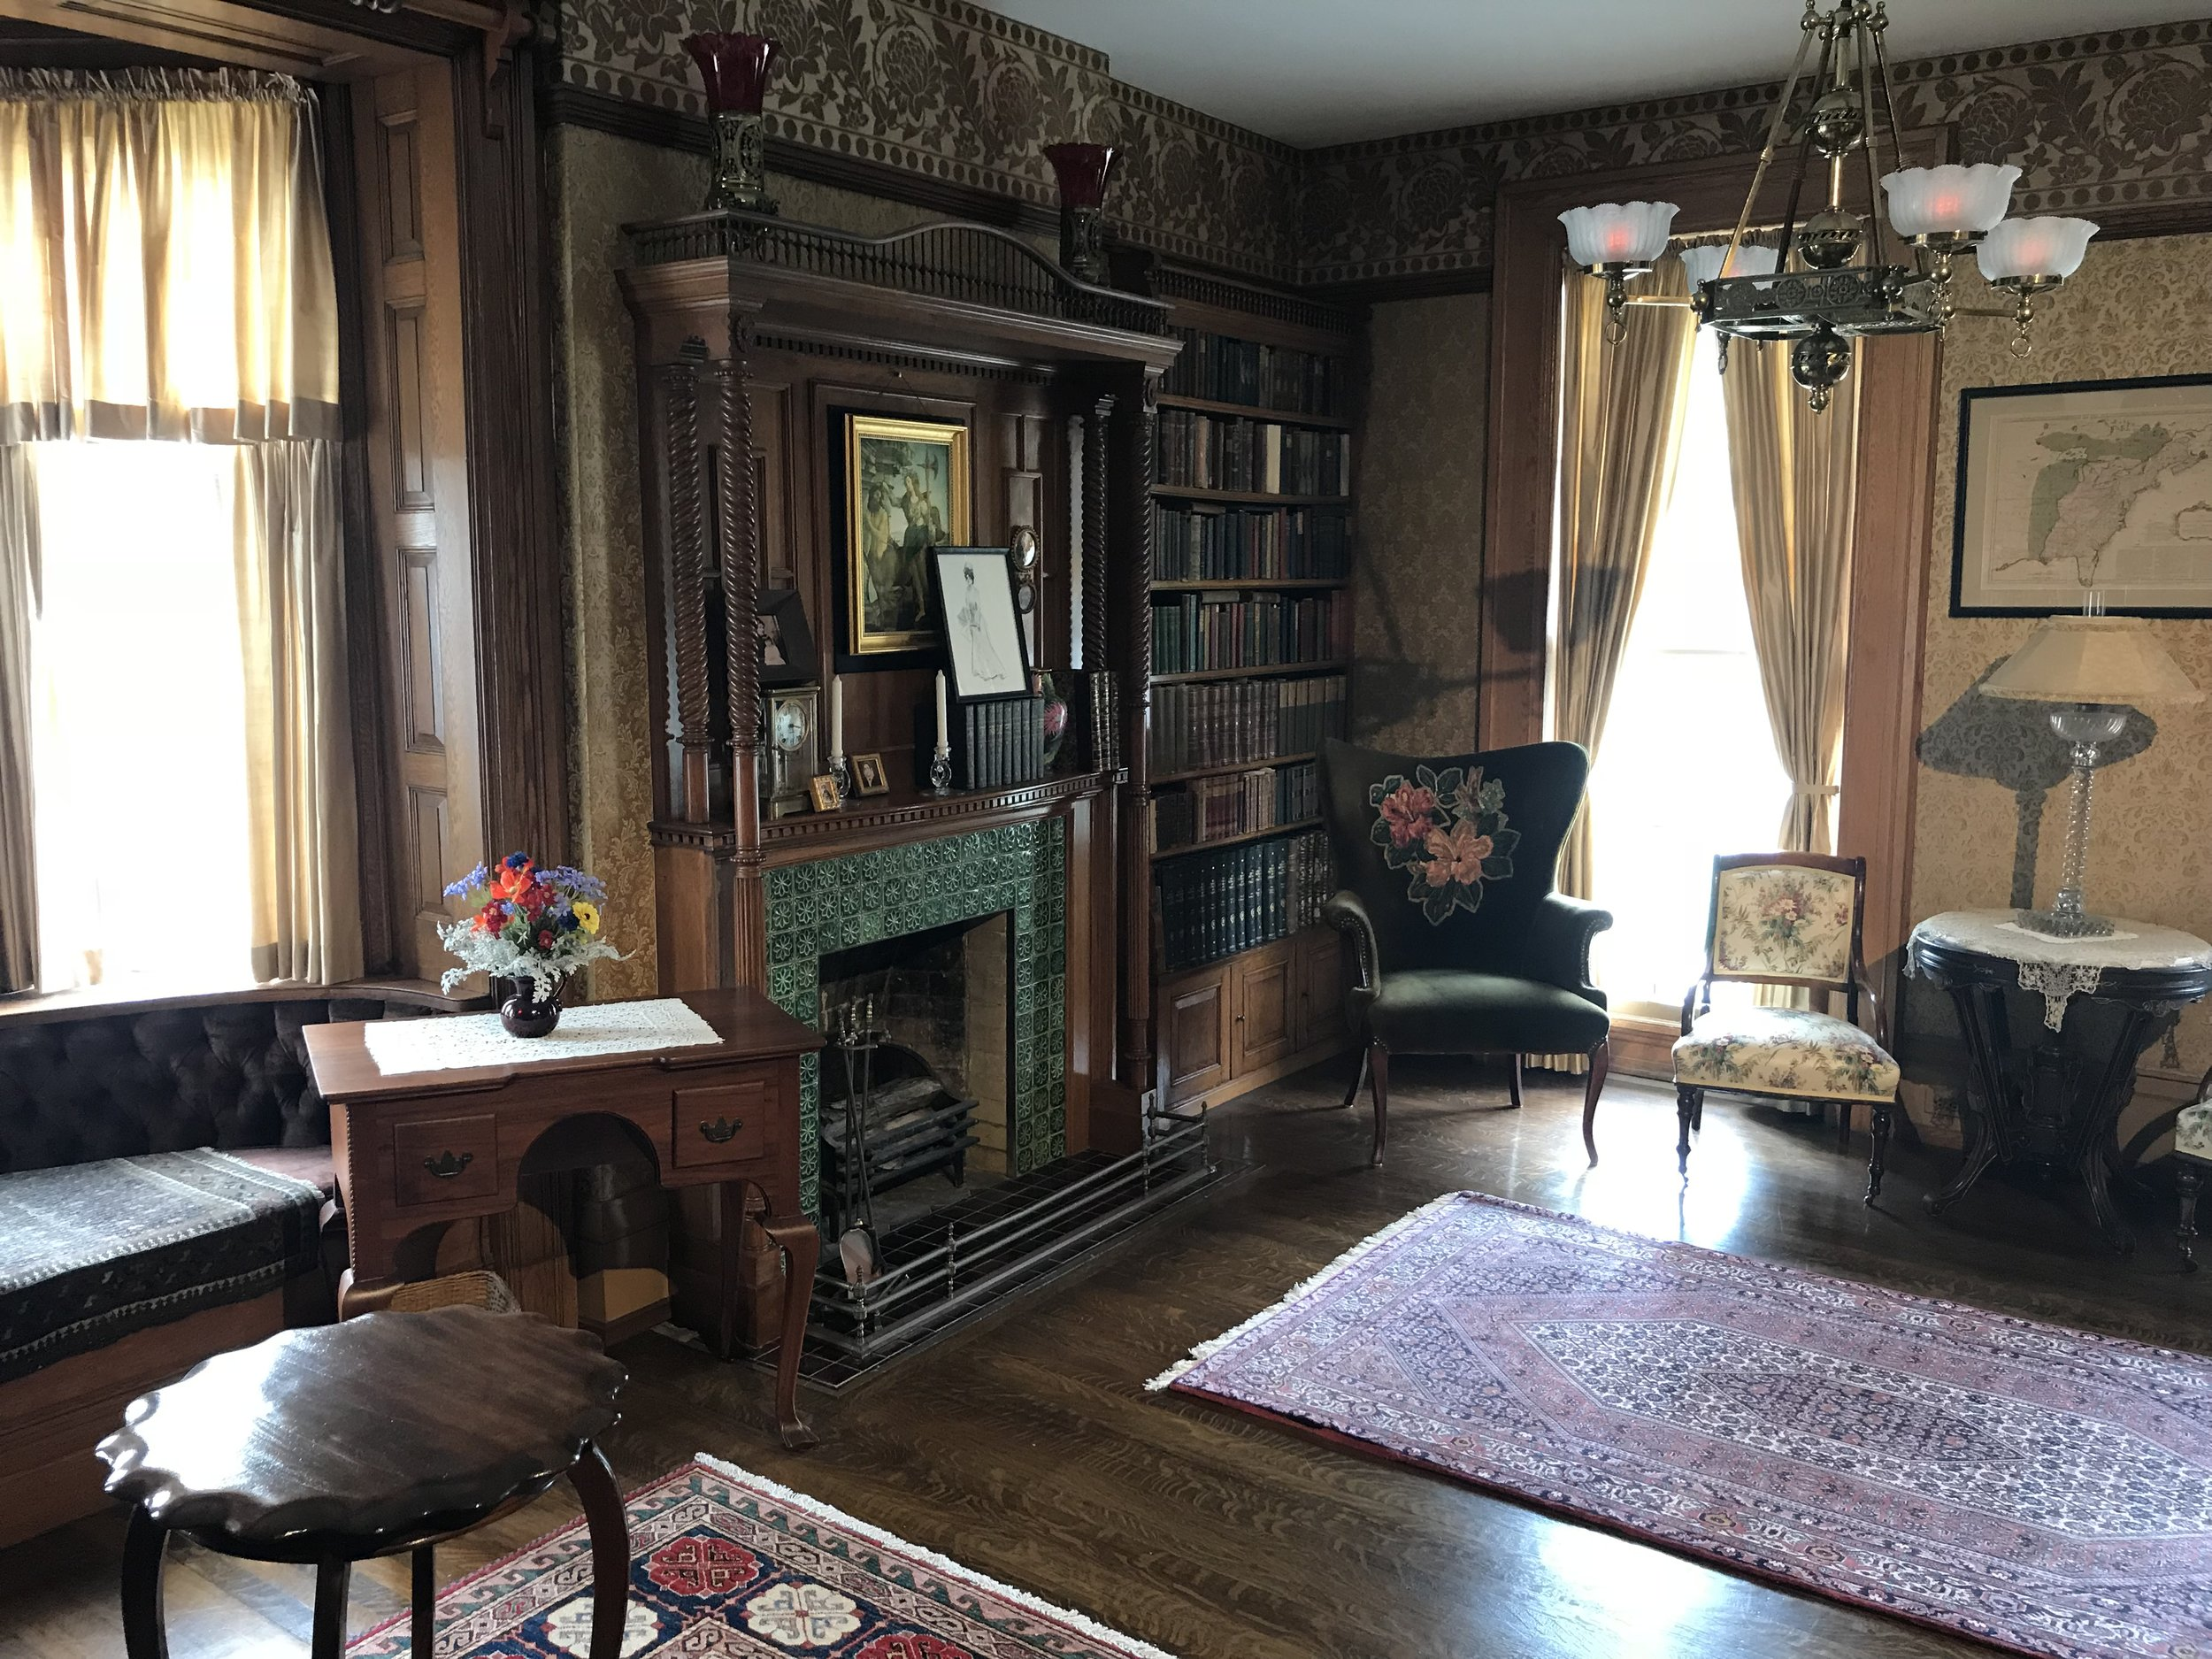 The parlor in which Roosevelt was sworn in.